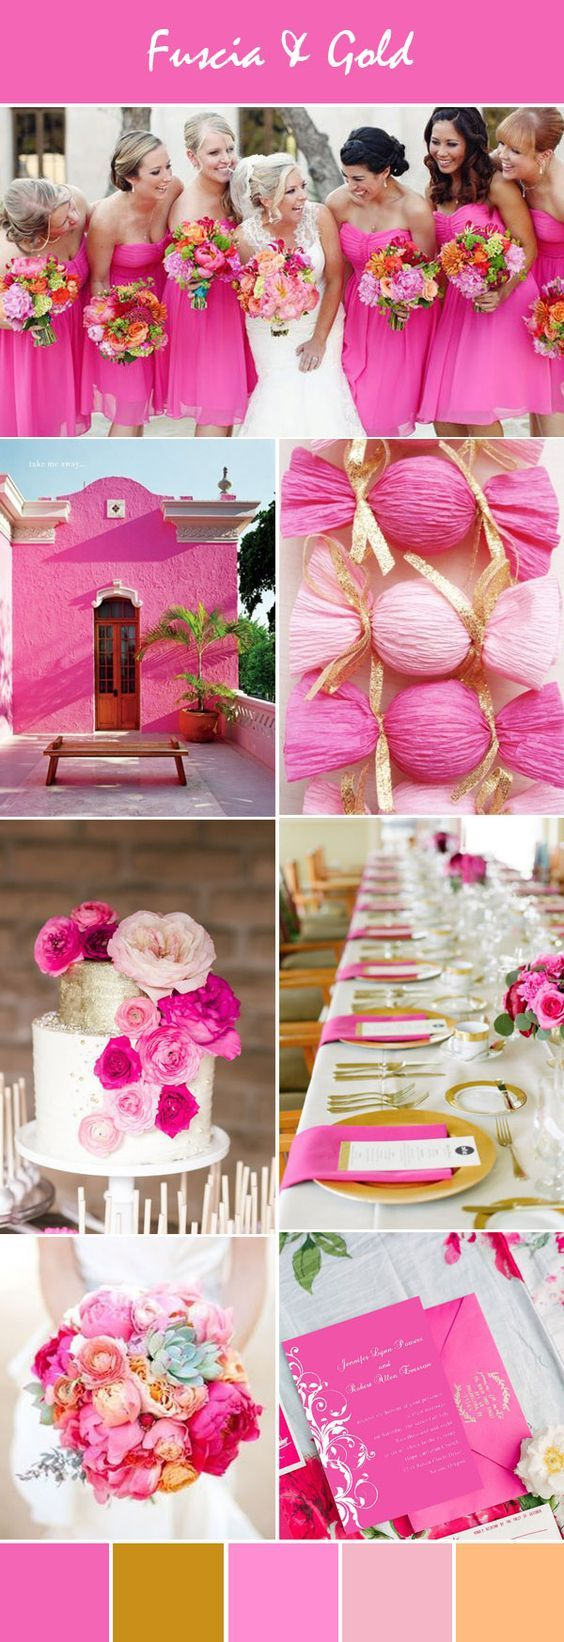 In honour of Breast Cancer Awareness, for this week's inspiration board, how about dash of pink? Go all out with vibrant Fuchsia and Gold. Perfect for a Spring or Summer affair. Not only is it girly, but it's a very fun color that makes everything stand out. So don't be afraid to have a pink affair....Read More »